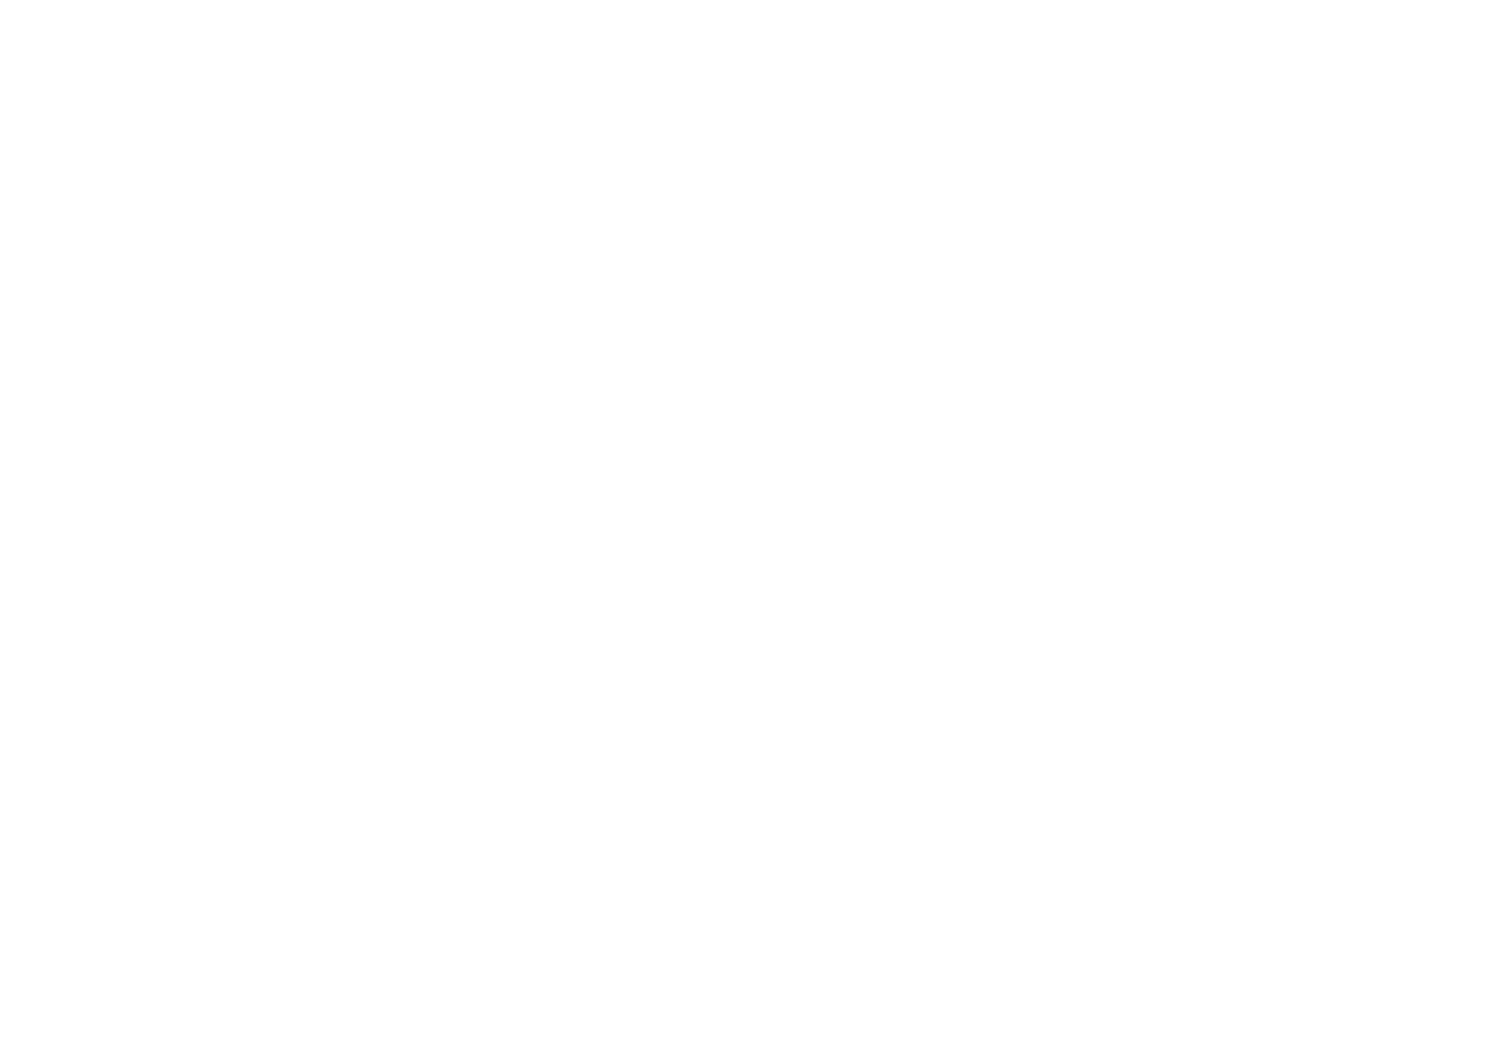 Pure Land Poetry